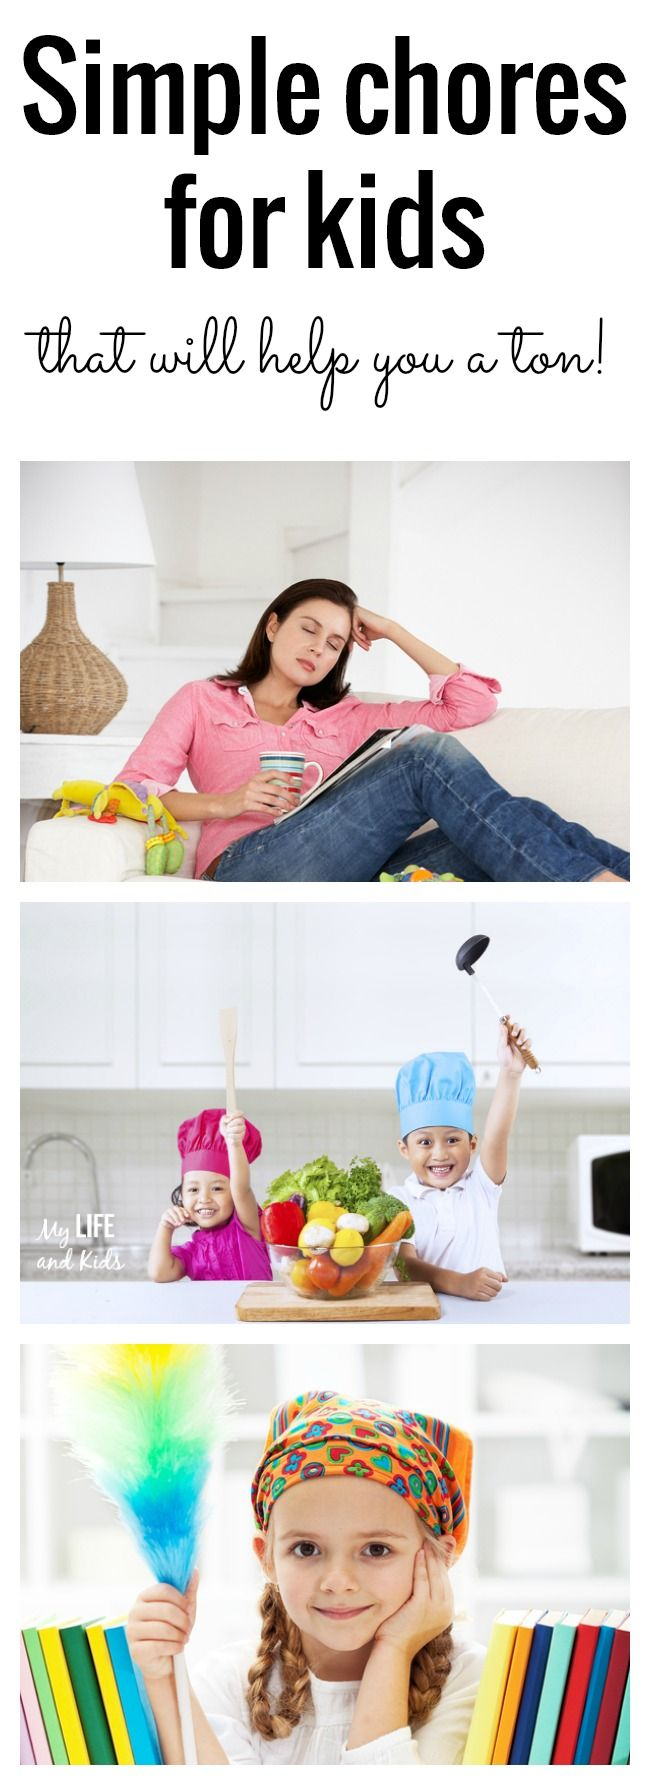 Five simple chores for kids that will actually help you a ton! I love the shower tip.